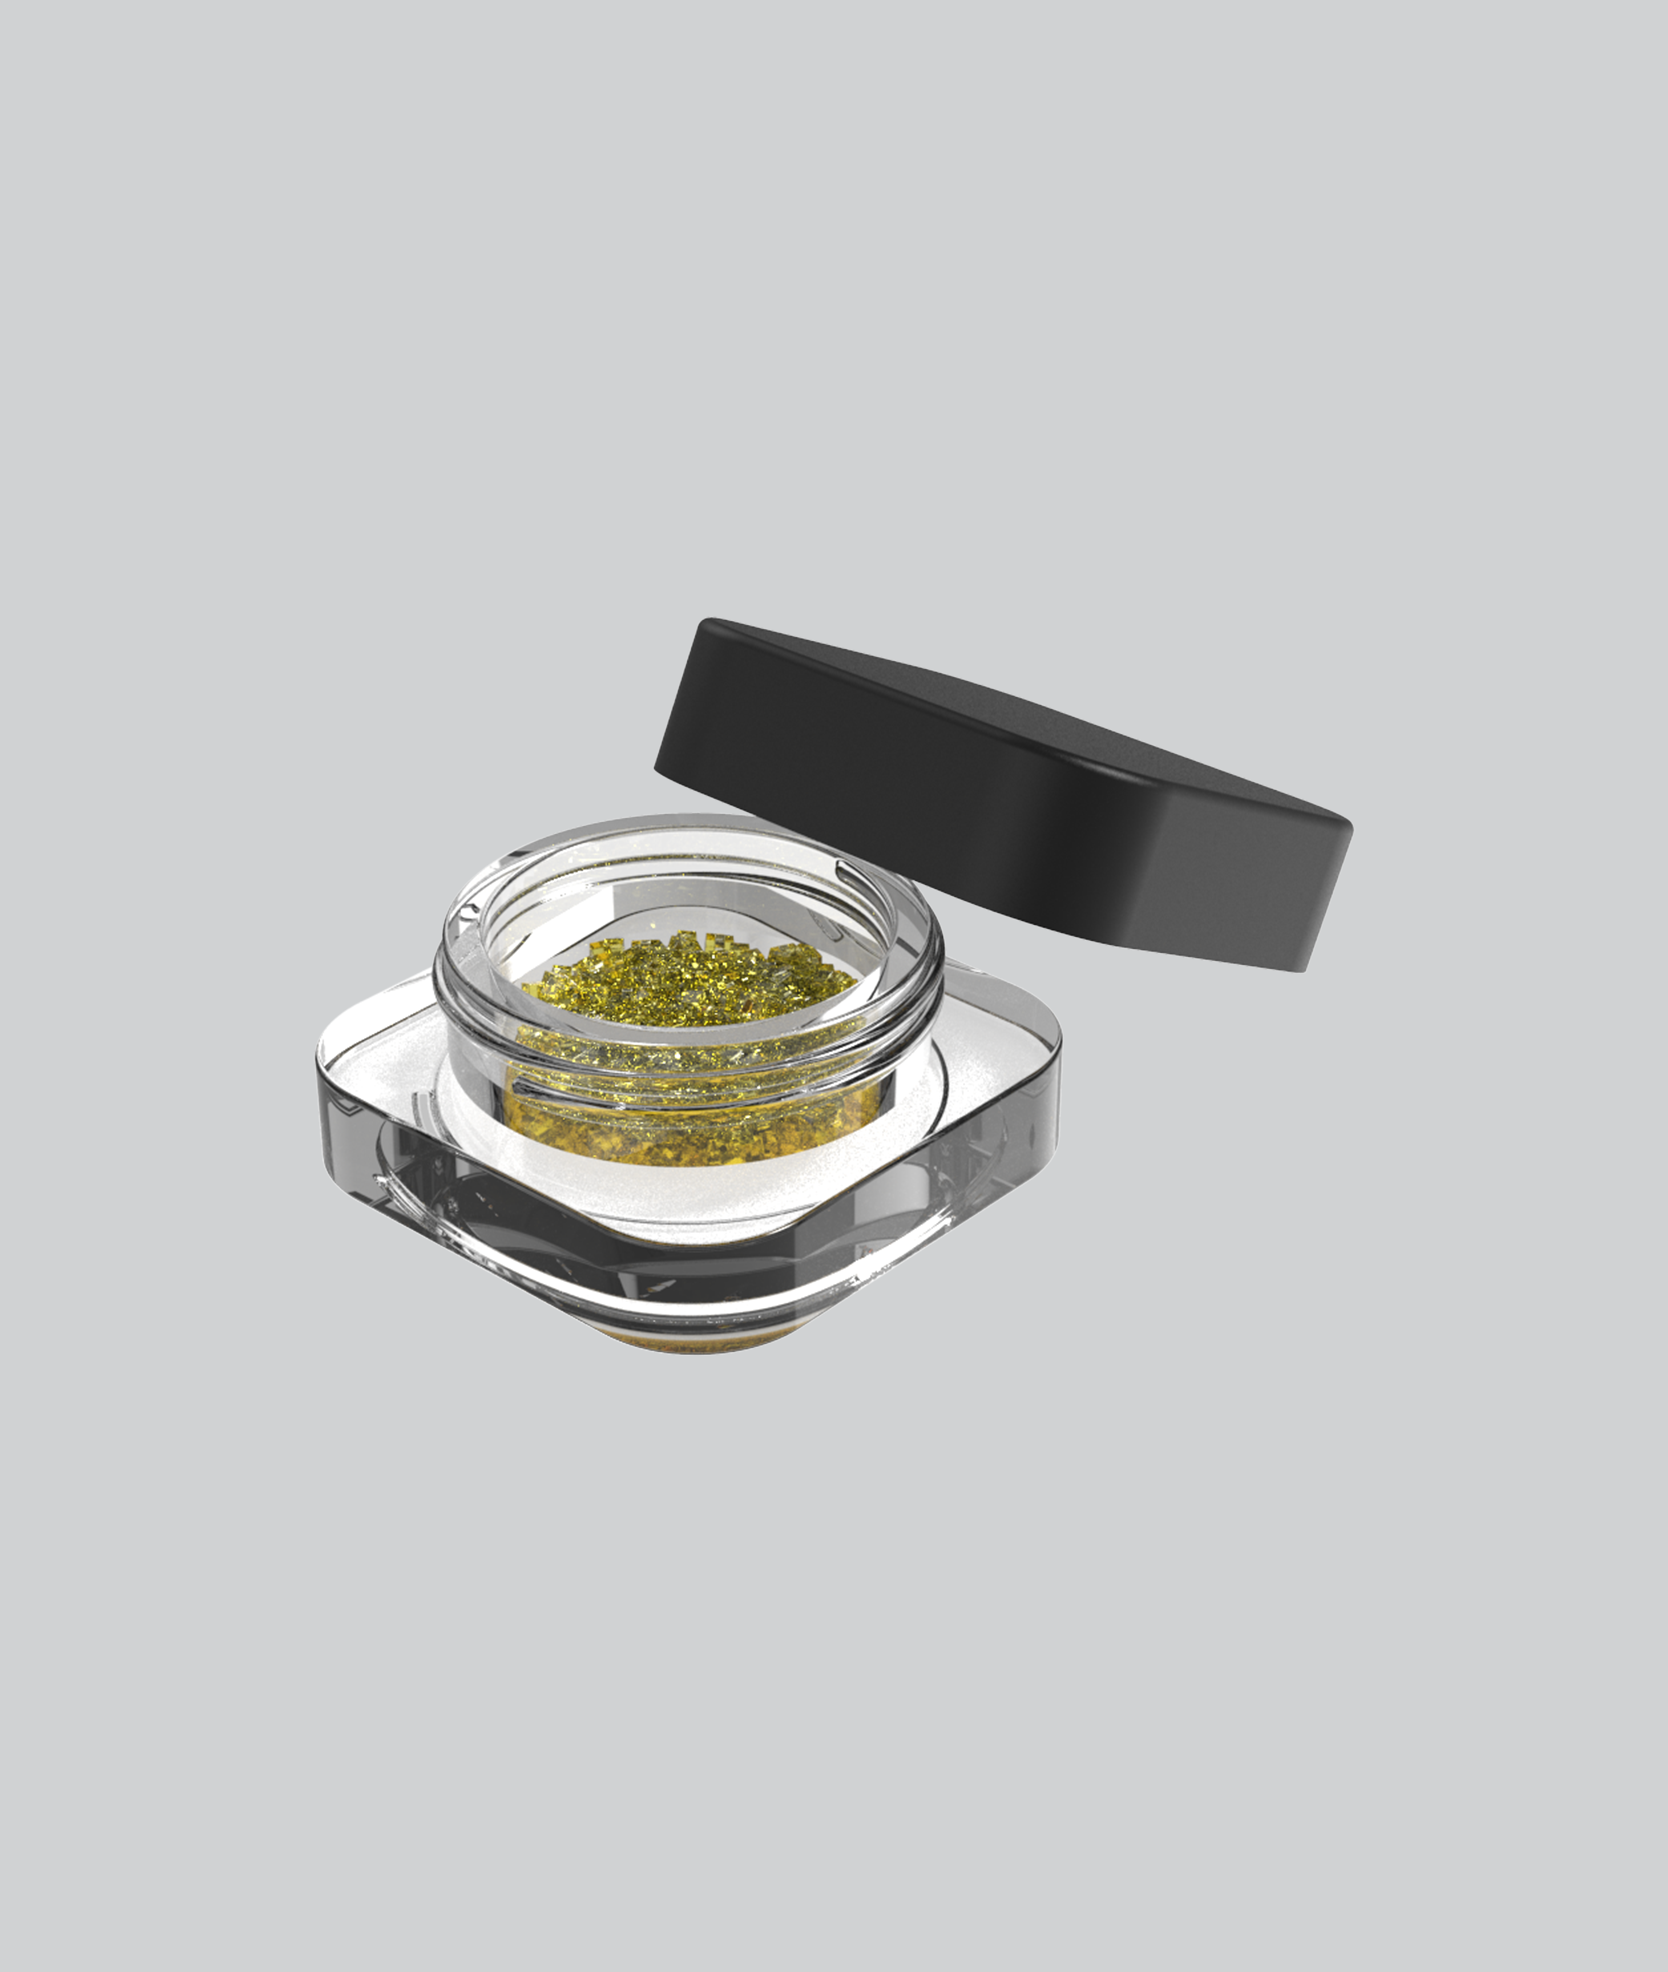 Softsquare-topical-concentrate-square-jars